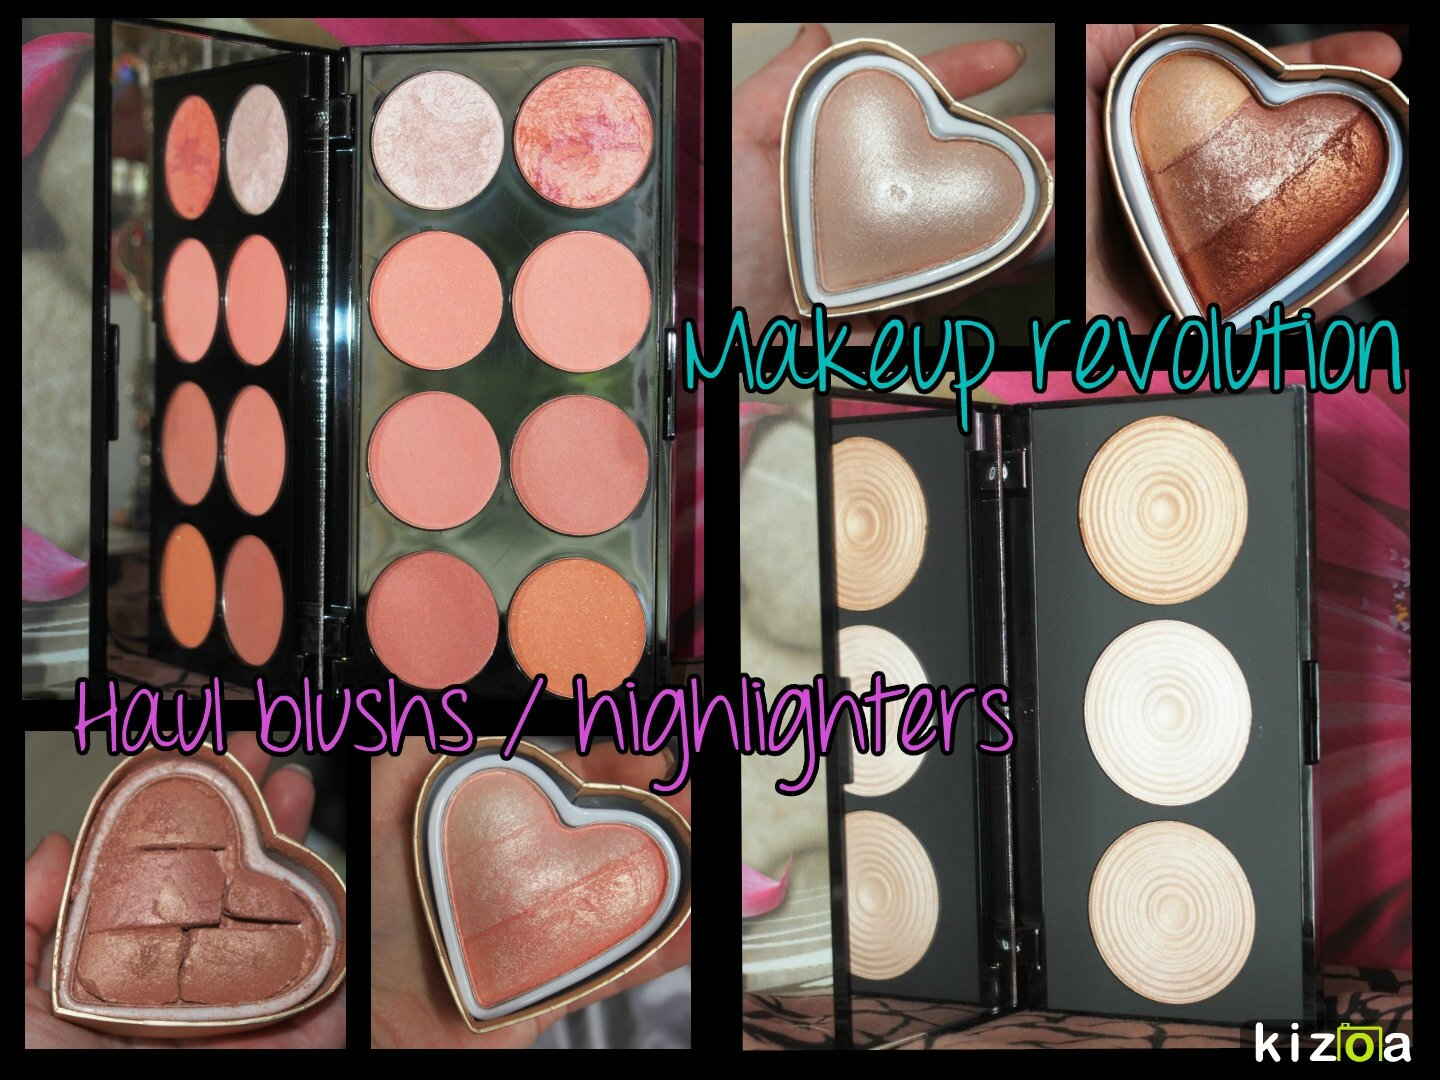 Haul blushs & highlighters makeup revolution.